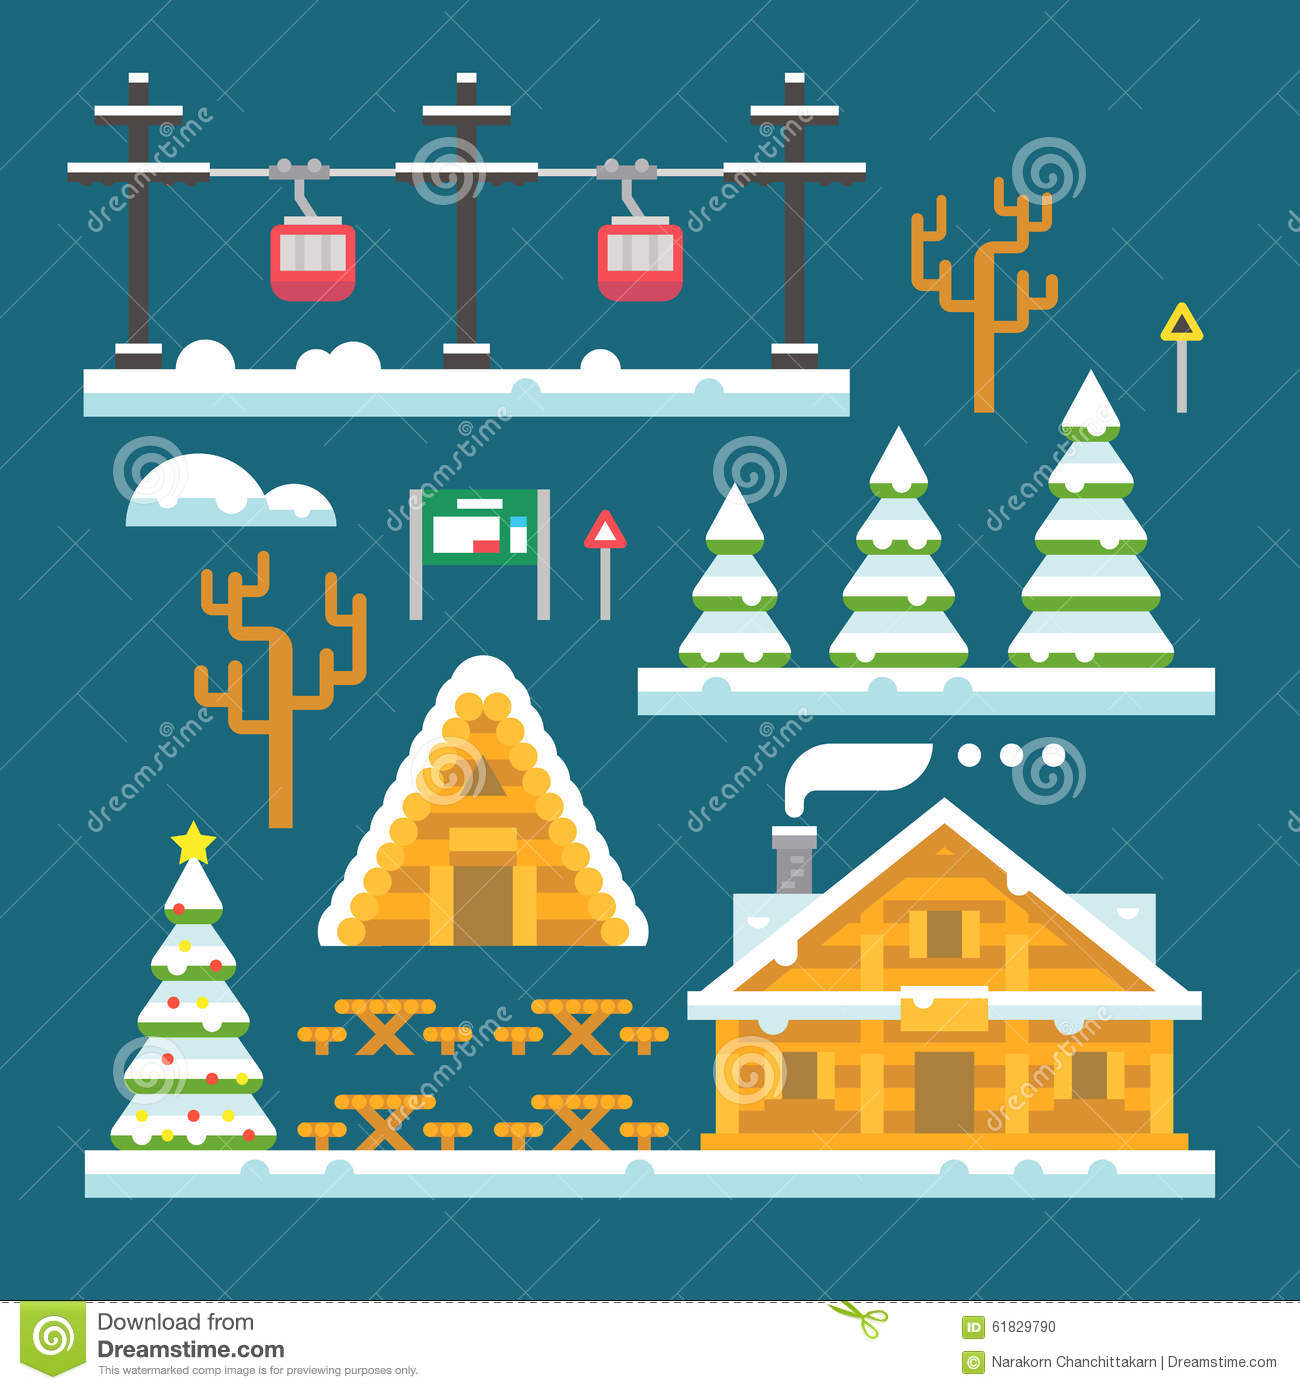 Winter ski resort flat design stock illustration image for Designhotel ski